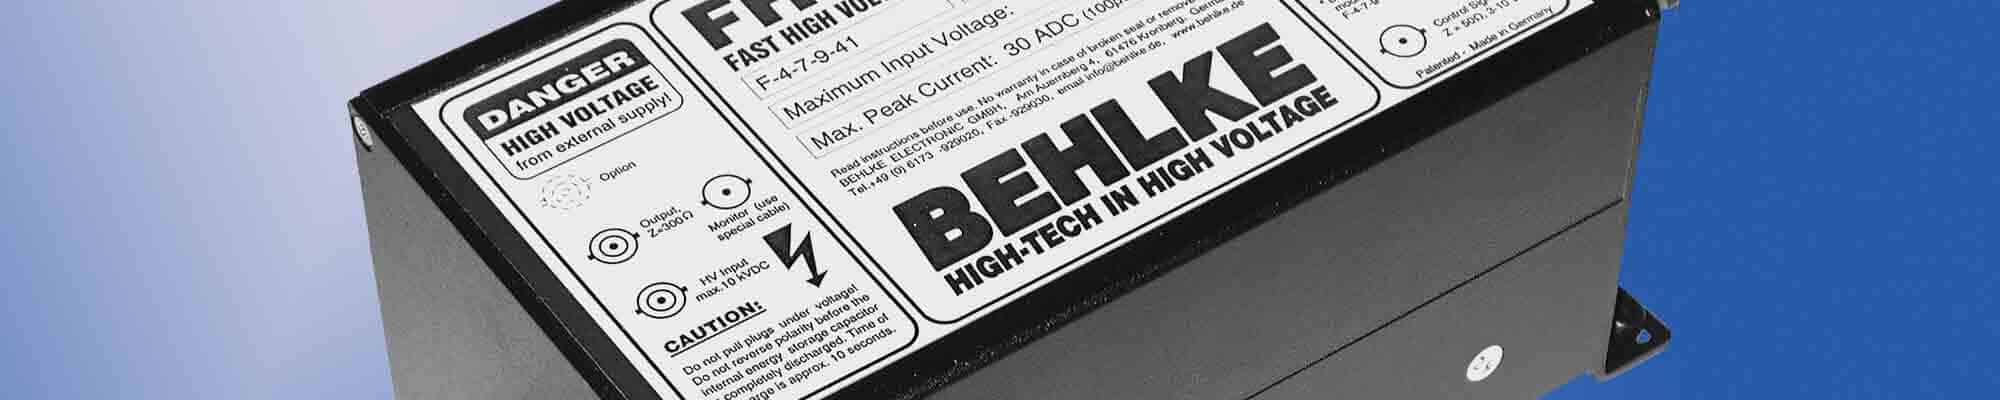 High-Voltage_Behlke3